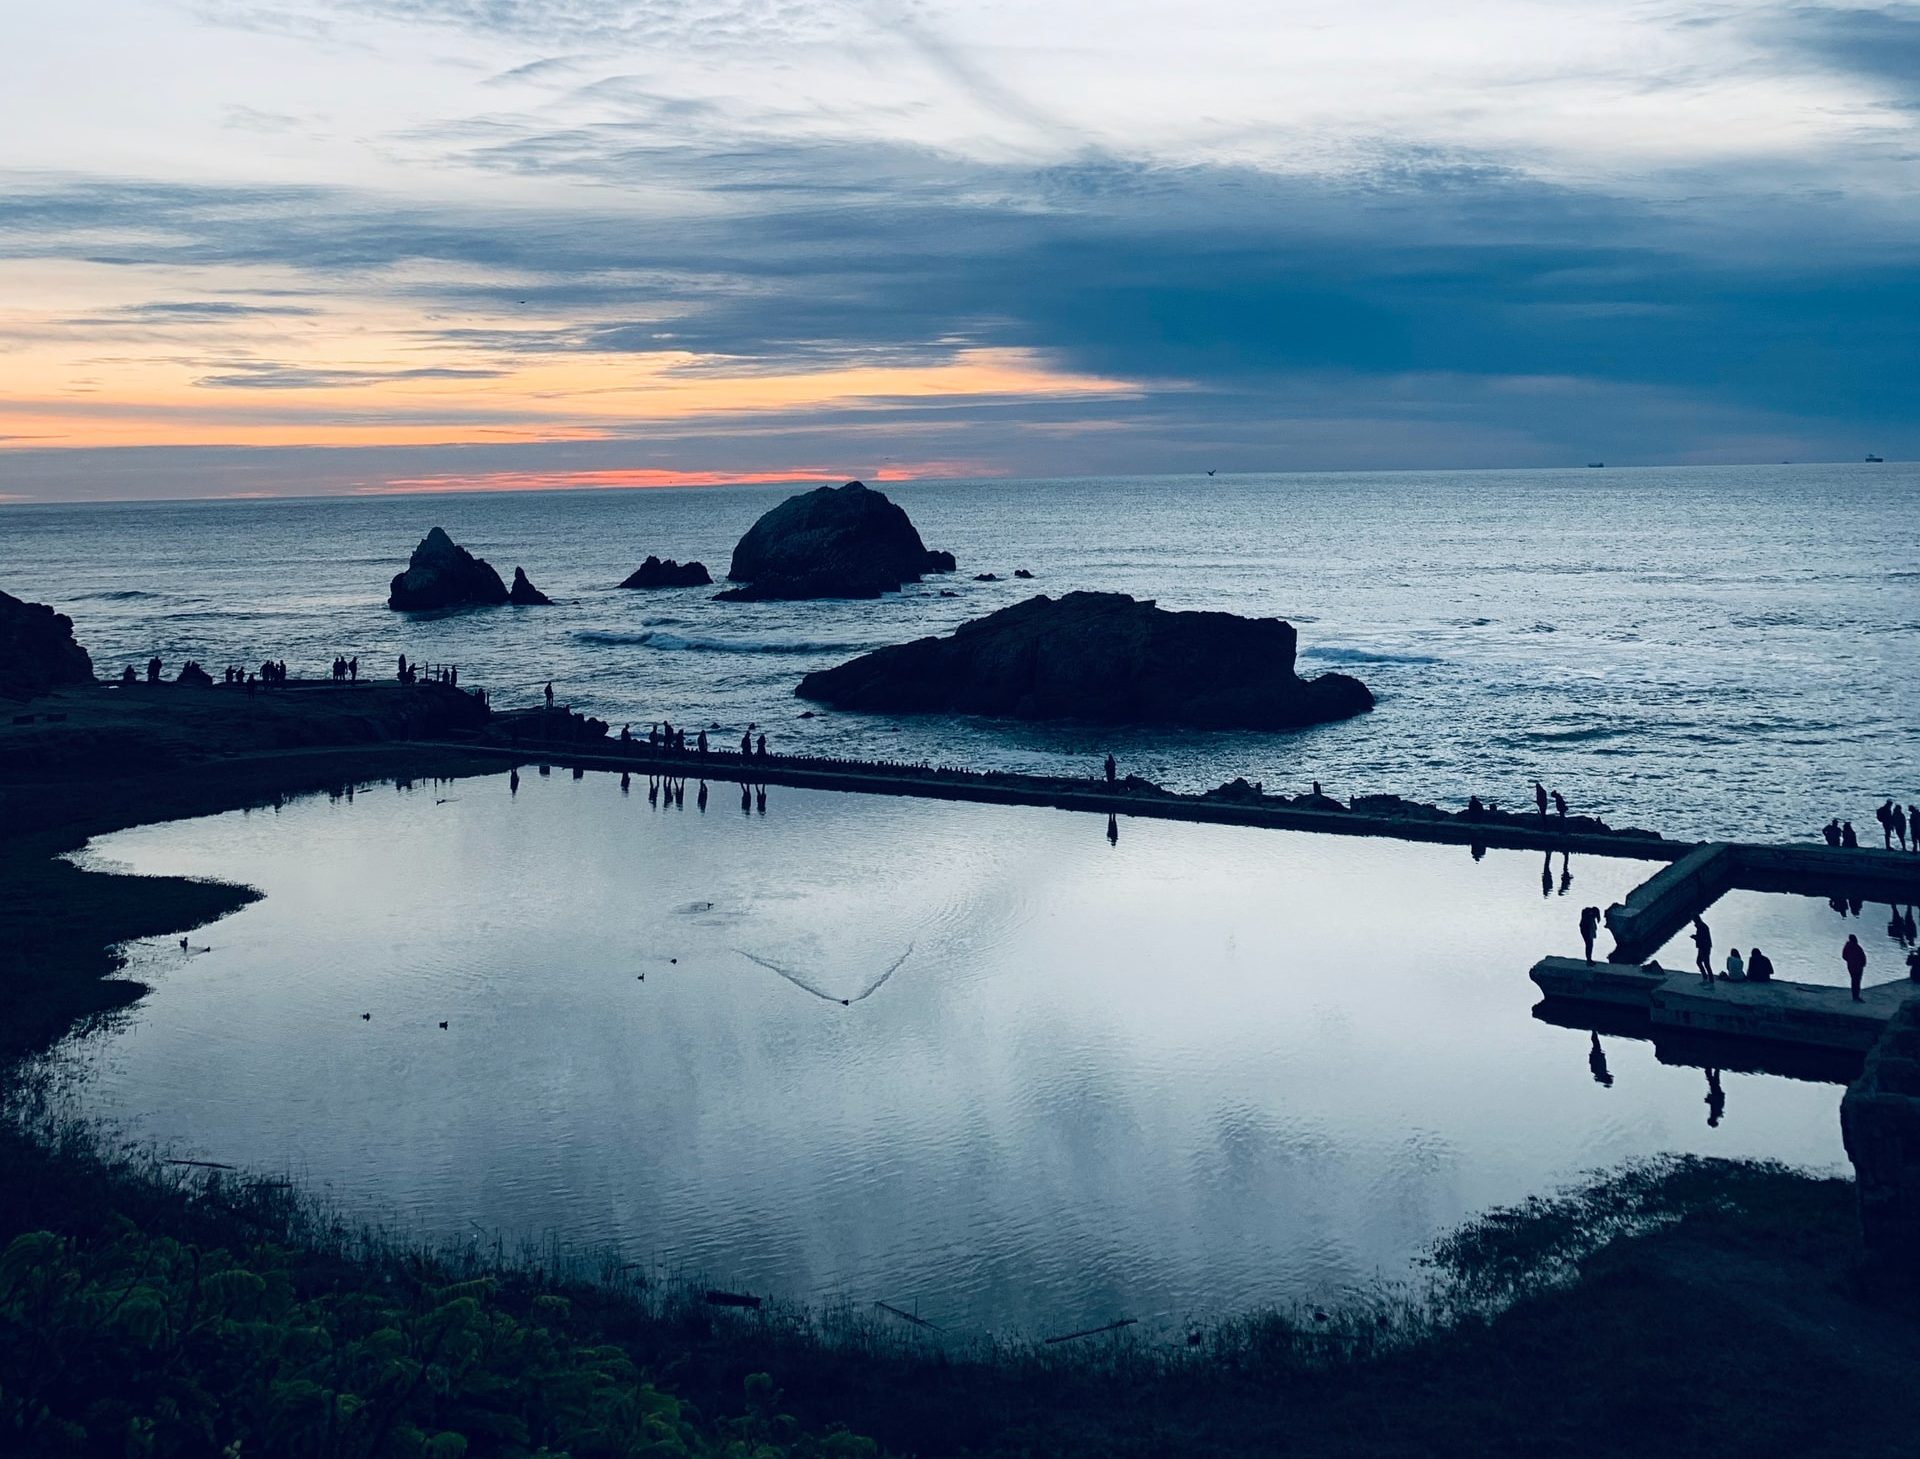 Sutro Baths at Lands End at Sunset